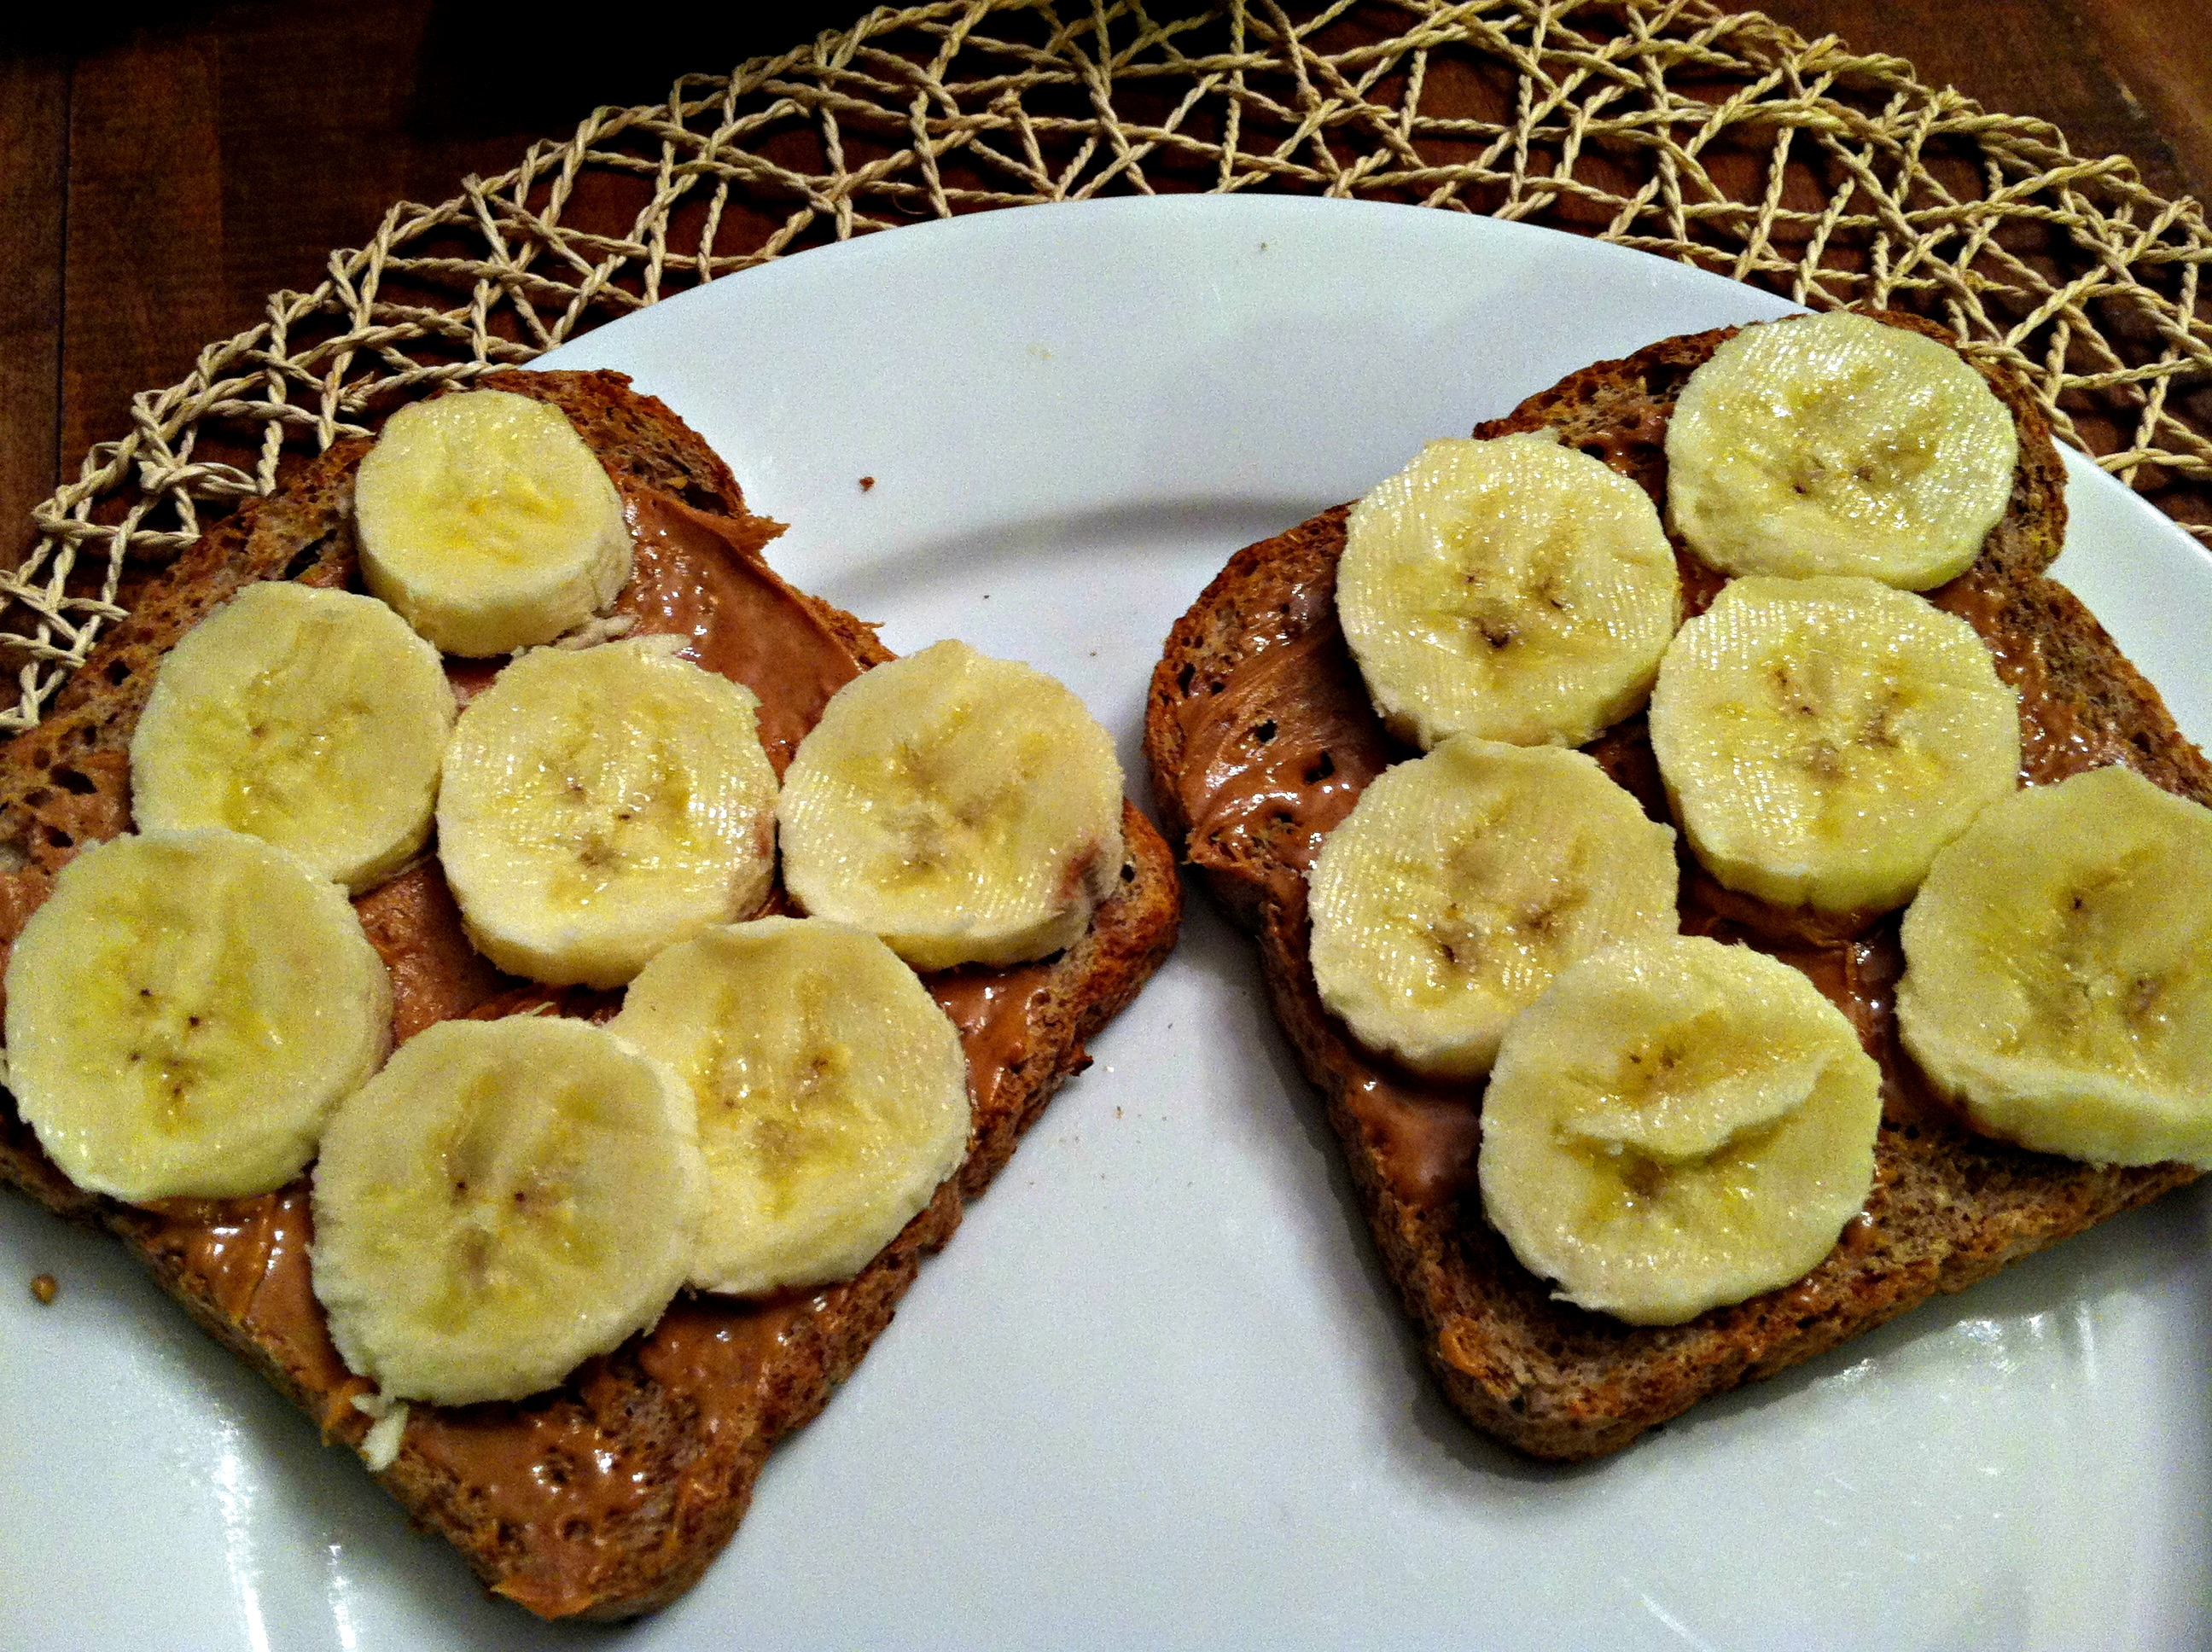 toast with PB and banana